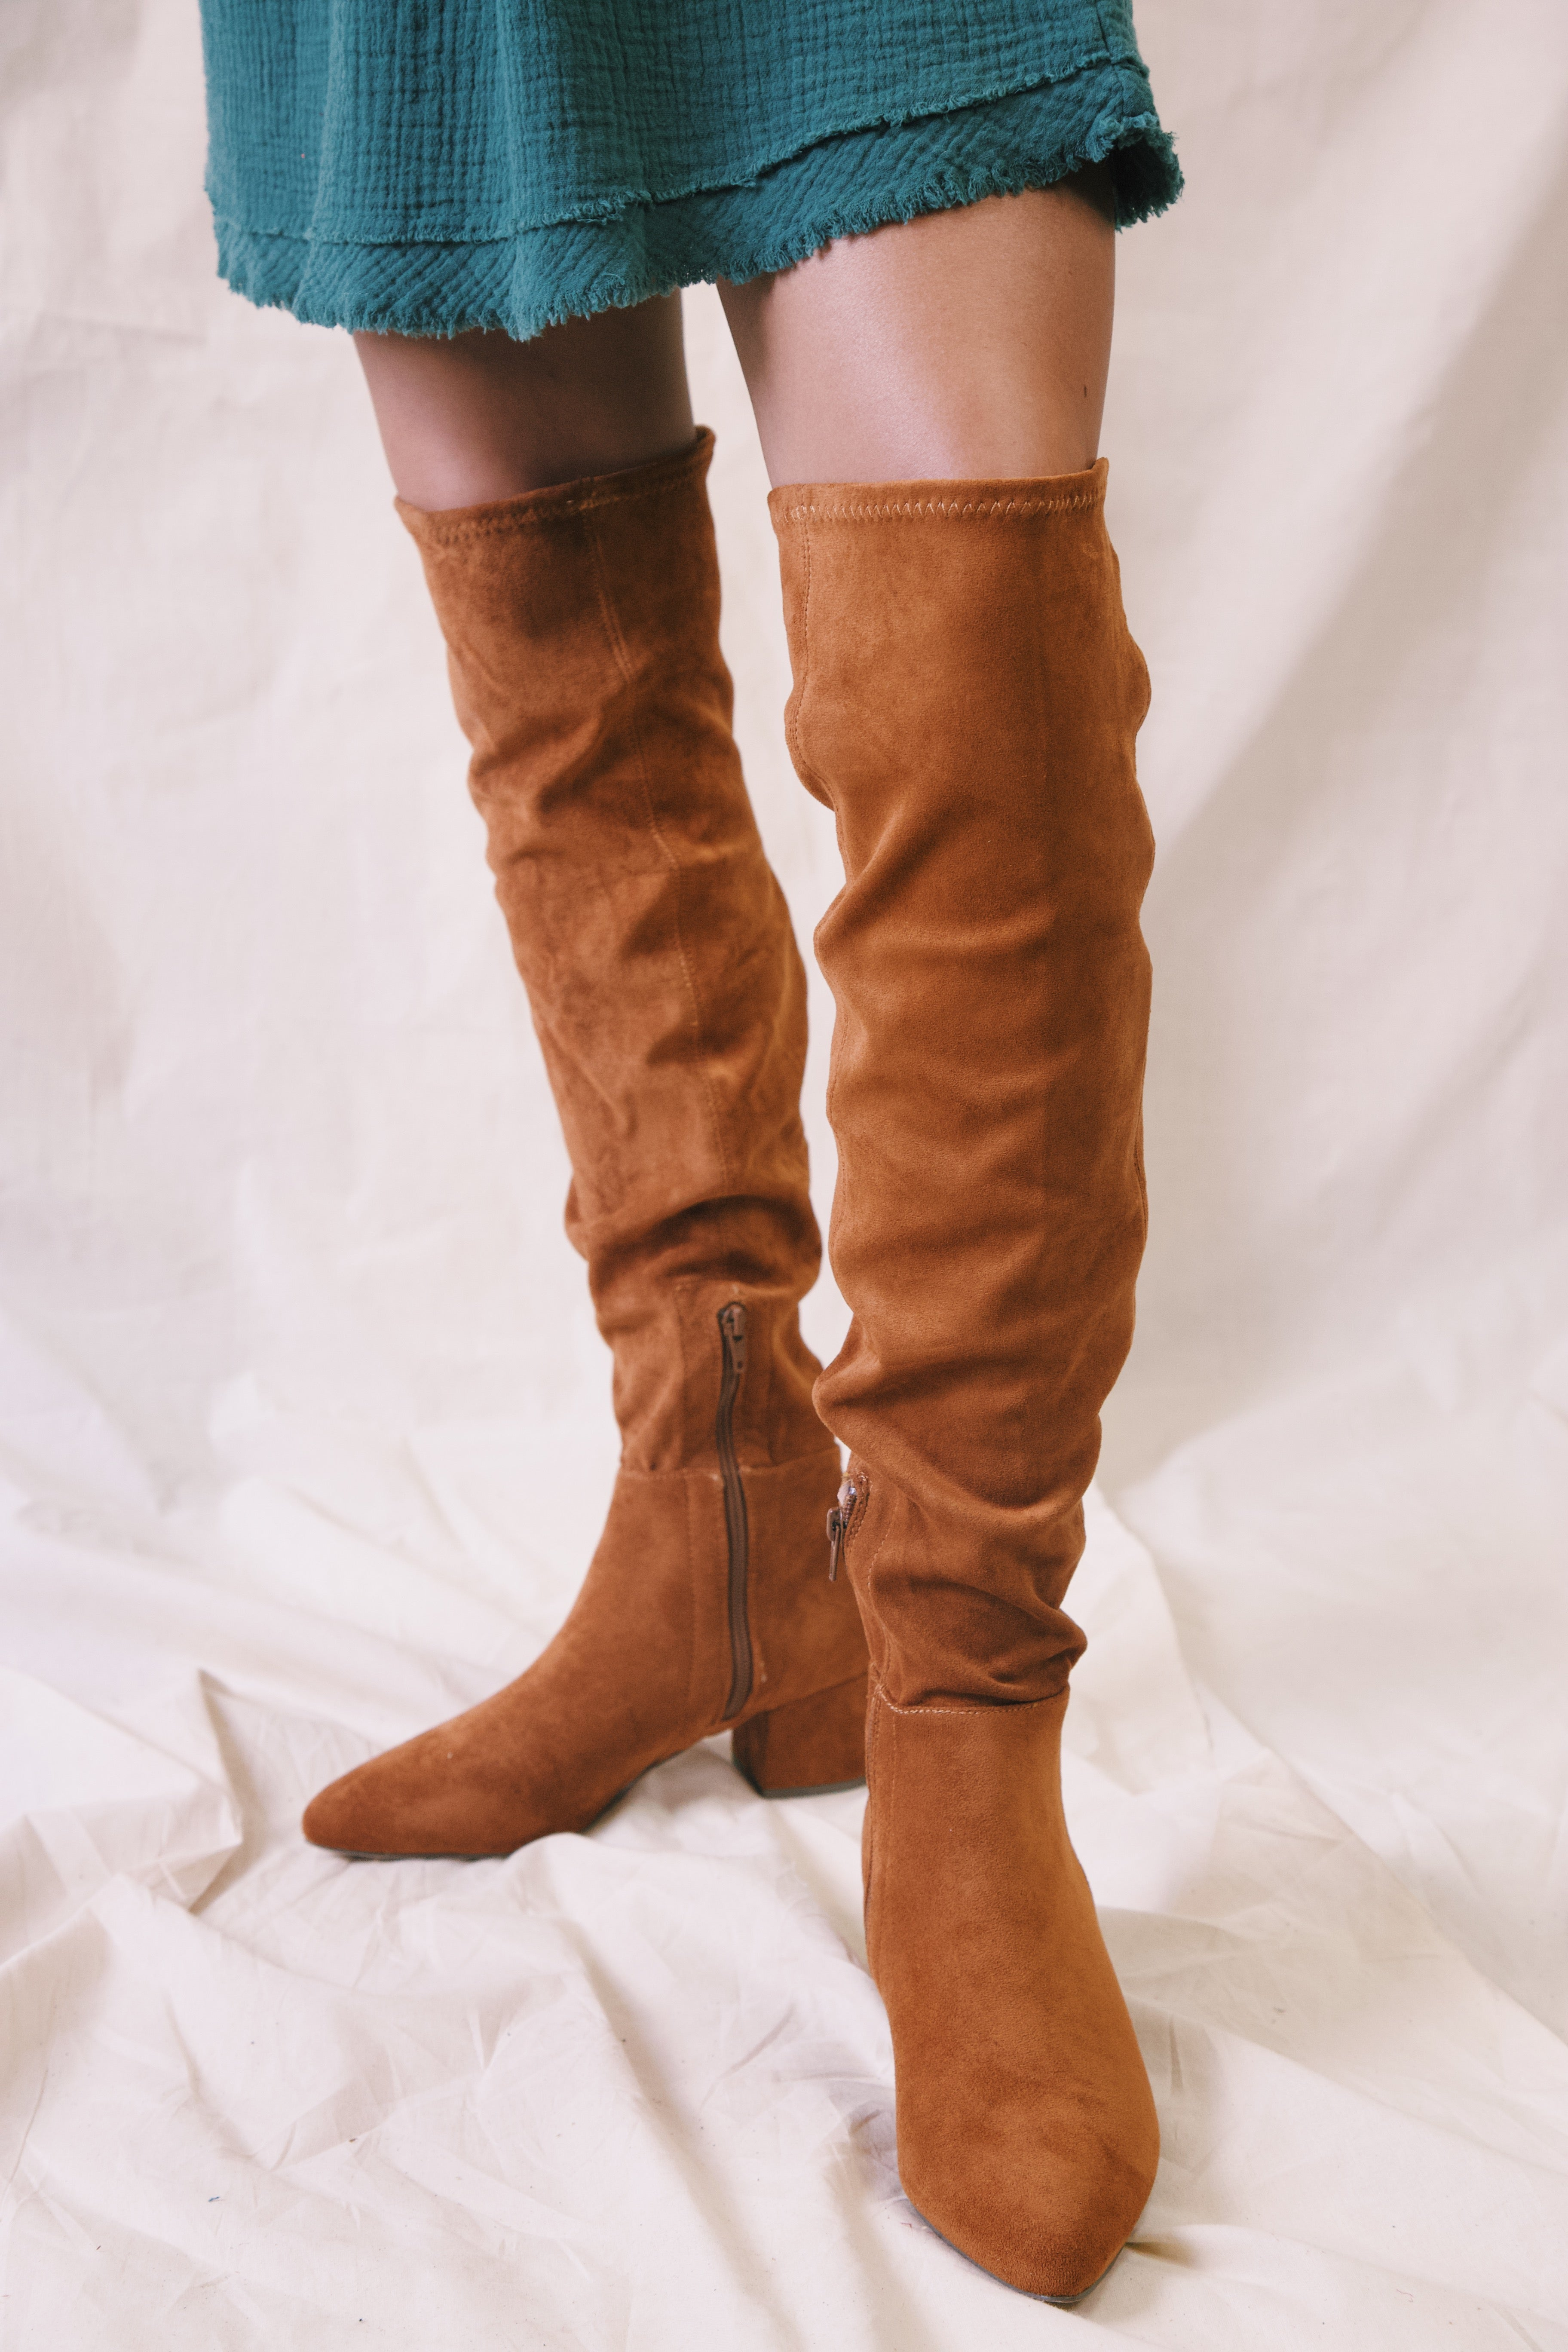 70s Shoes, Platforms, Boots, Heels | 1970s Shoes Wynter Faux Suede Over The Knee Boots Tan $58.00 AT vintagedancer.com